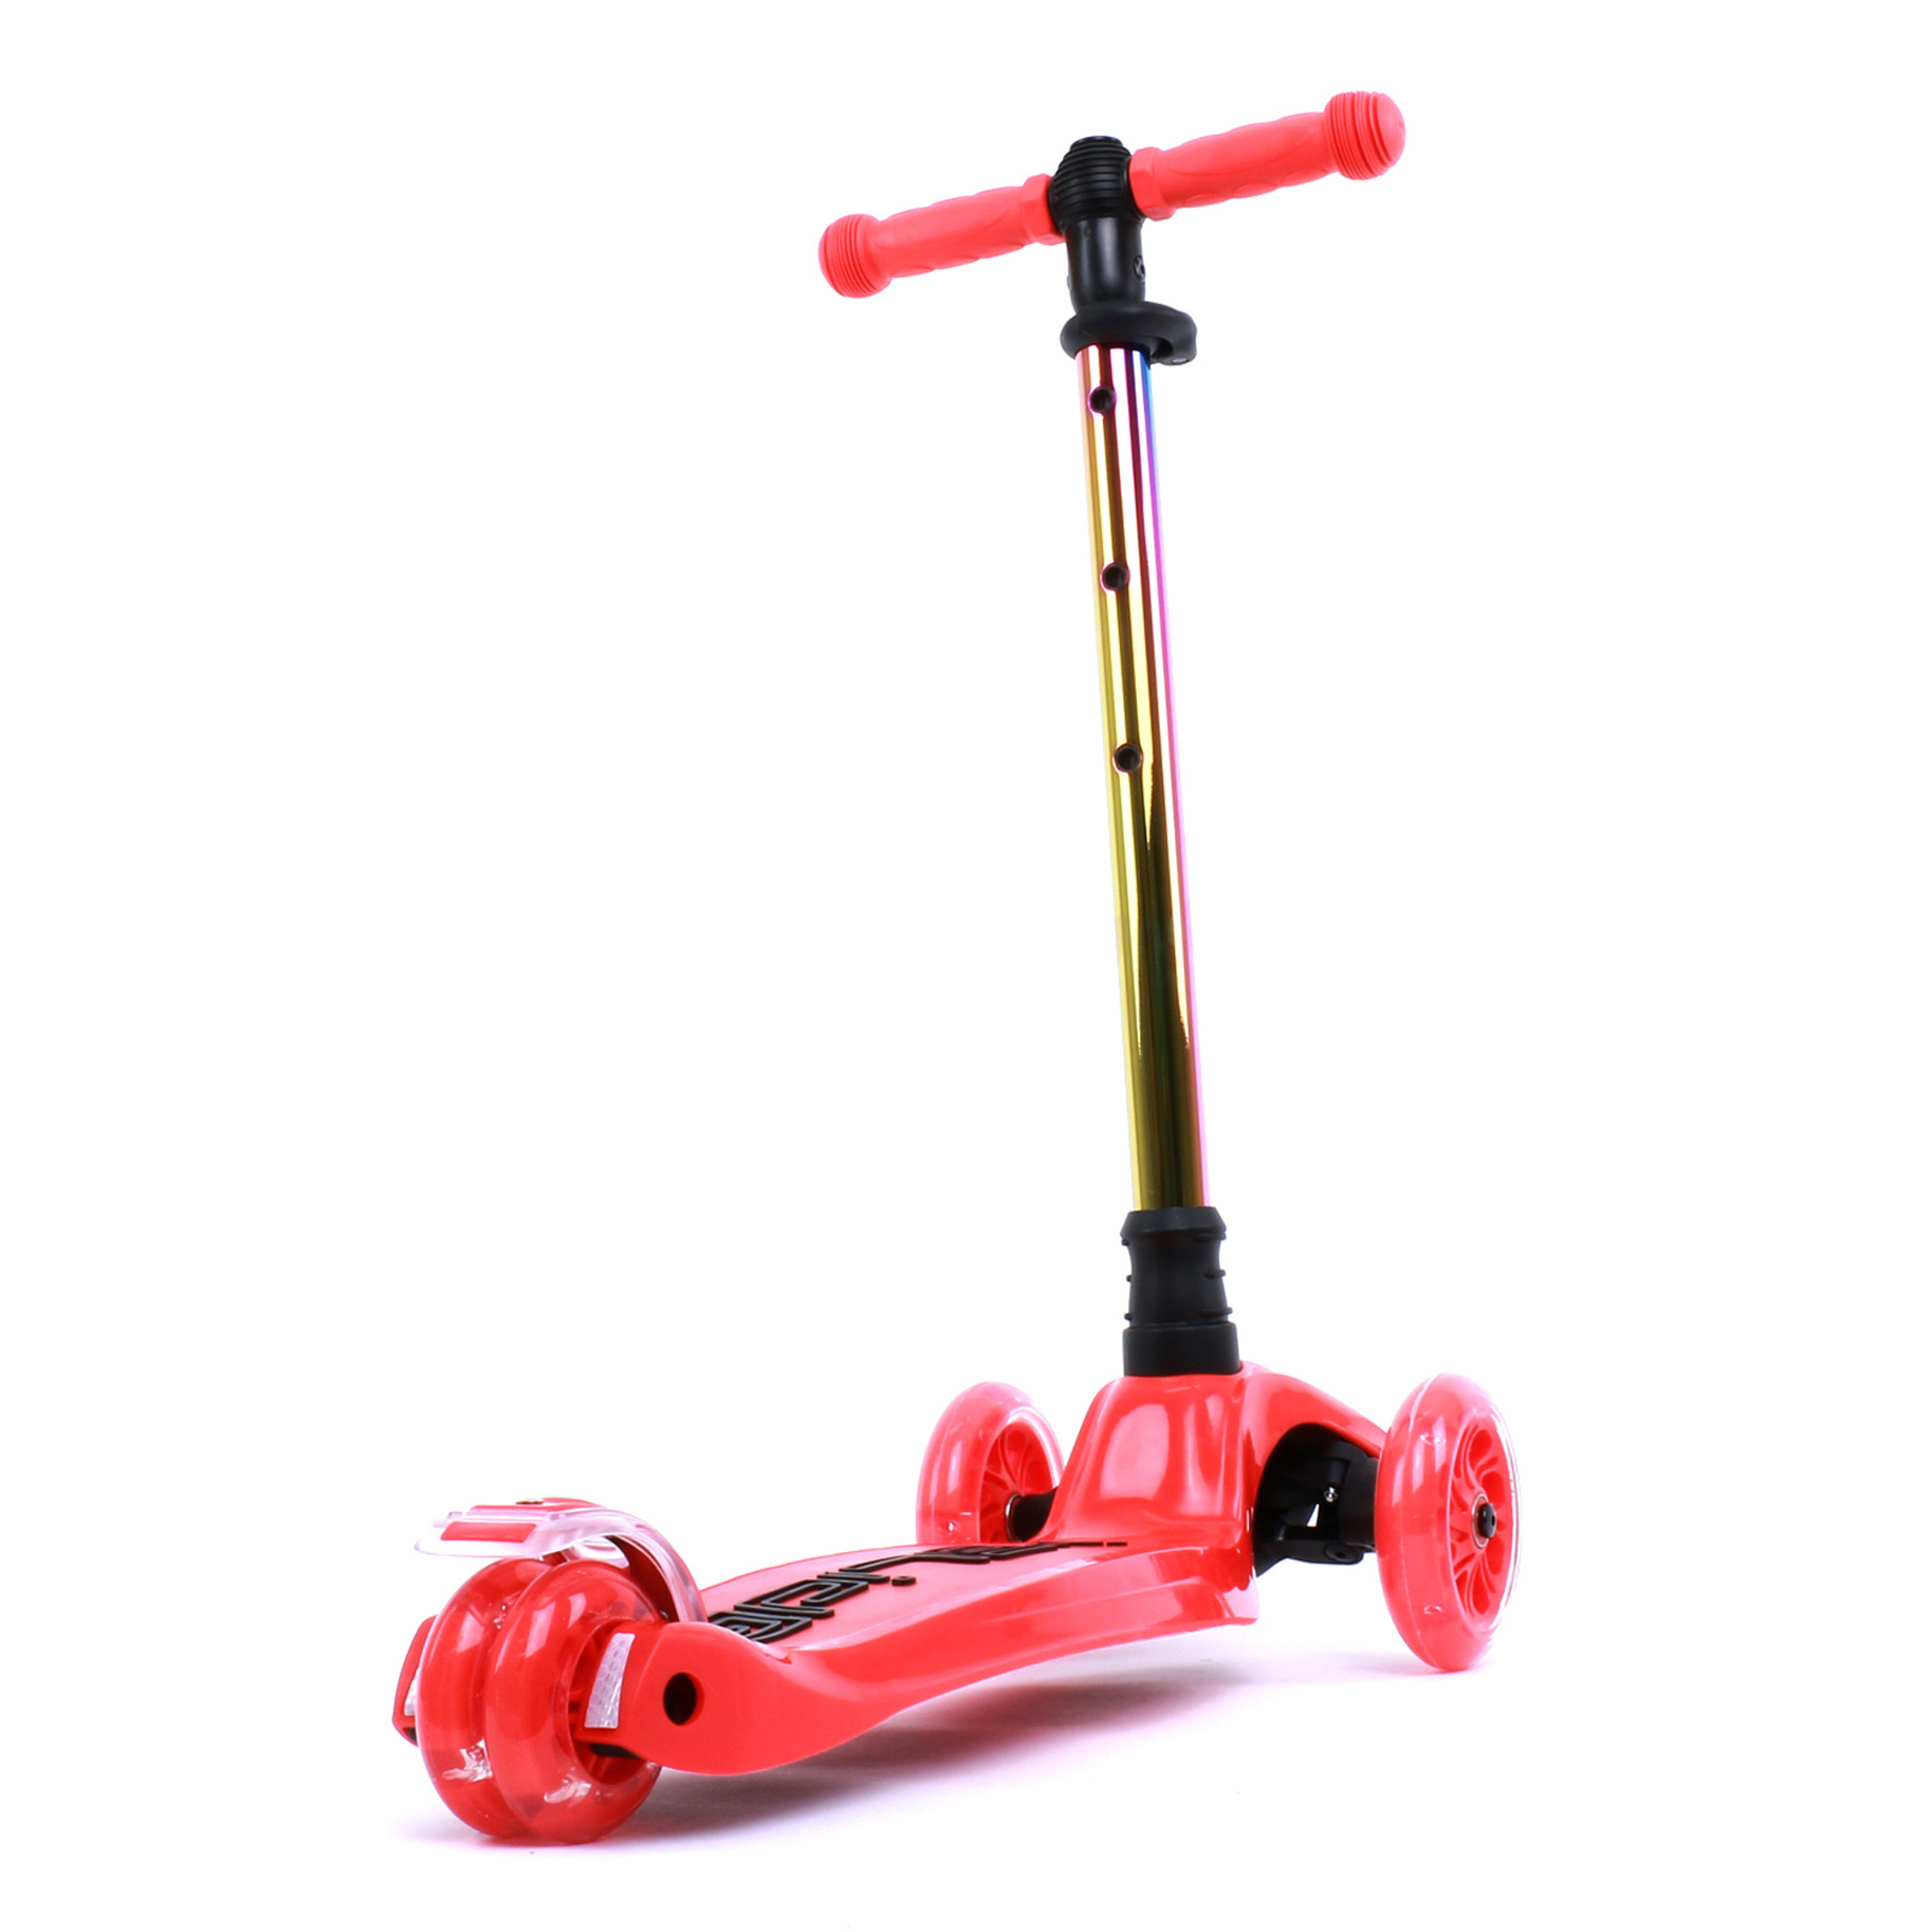 Kids 3-wheel Scooter | Red | Neochrome bar